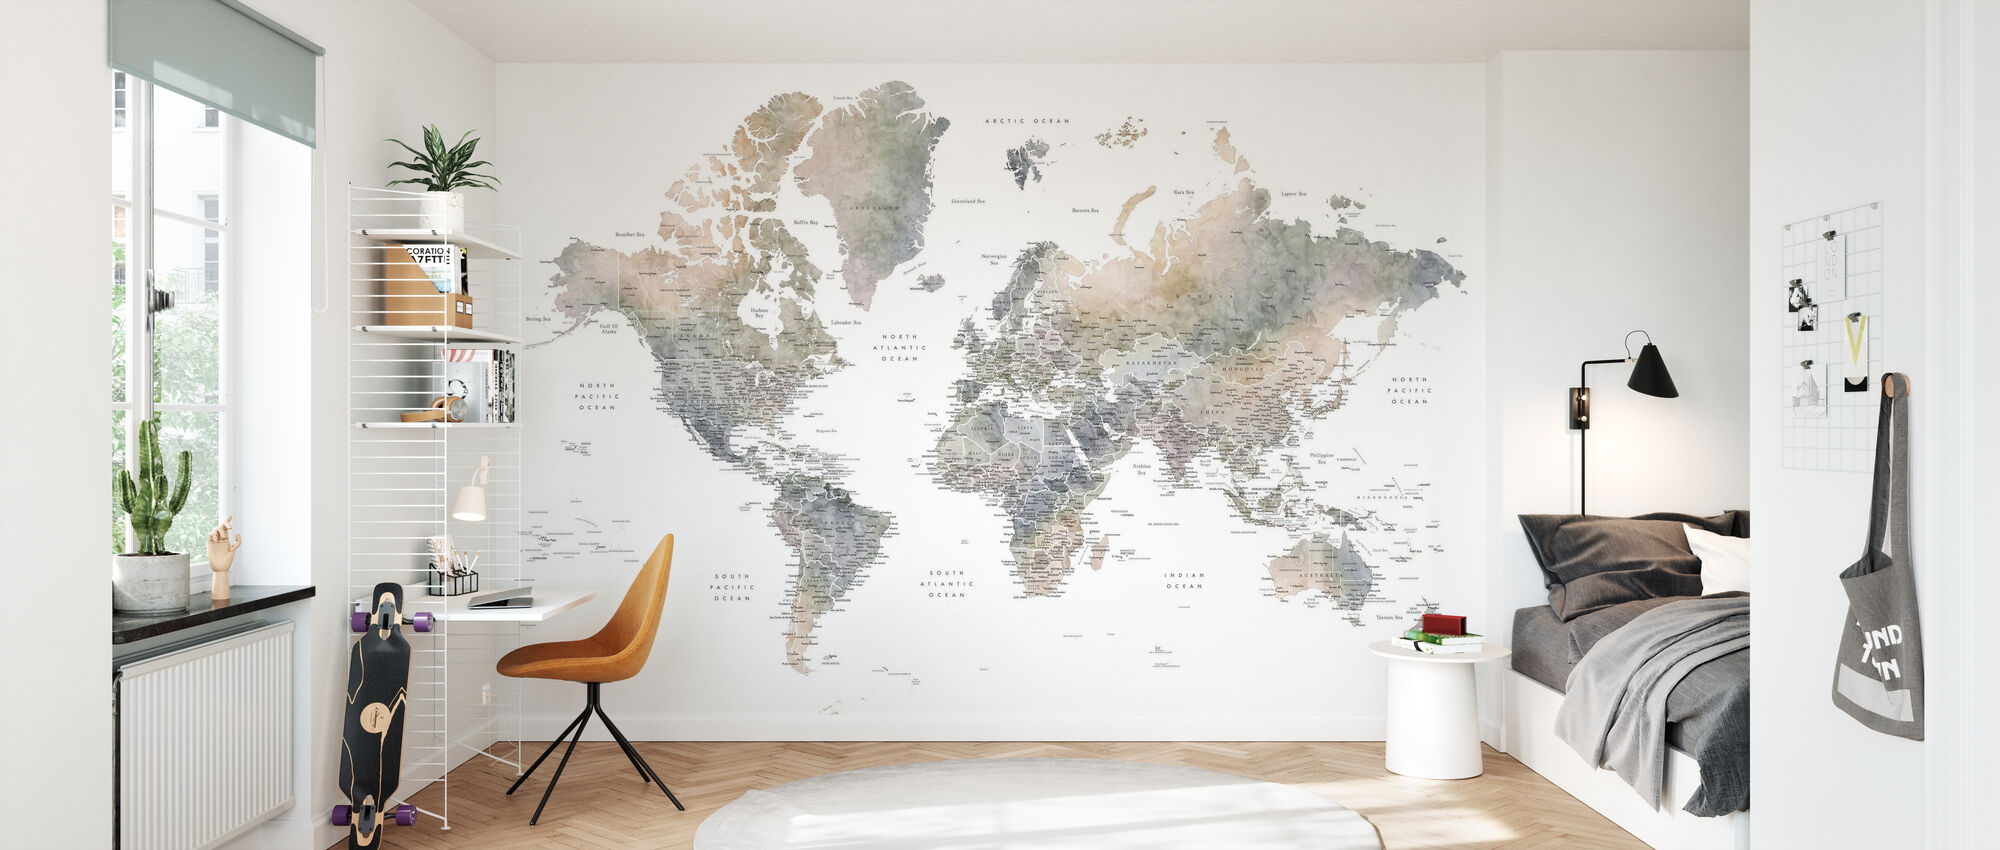 World Map with Cities - Wallpaper - Kids Room